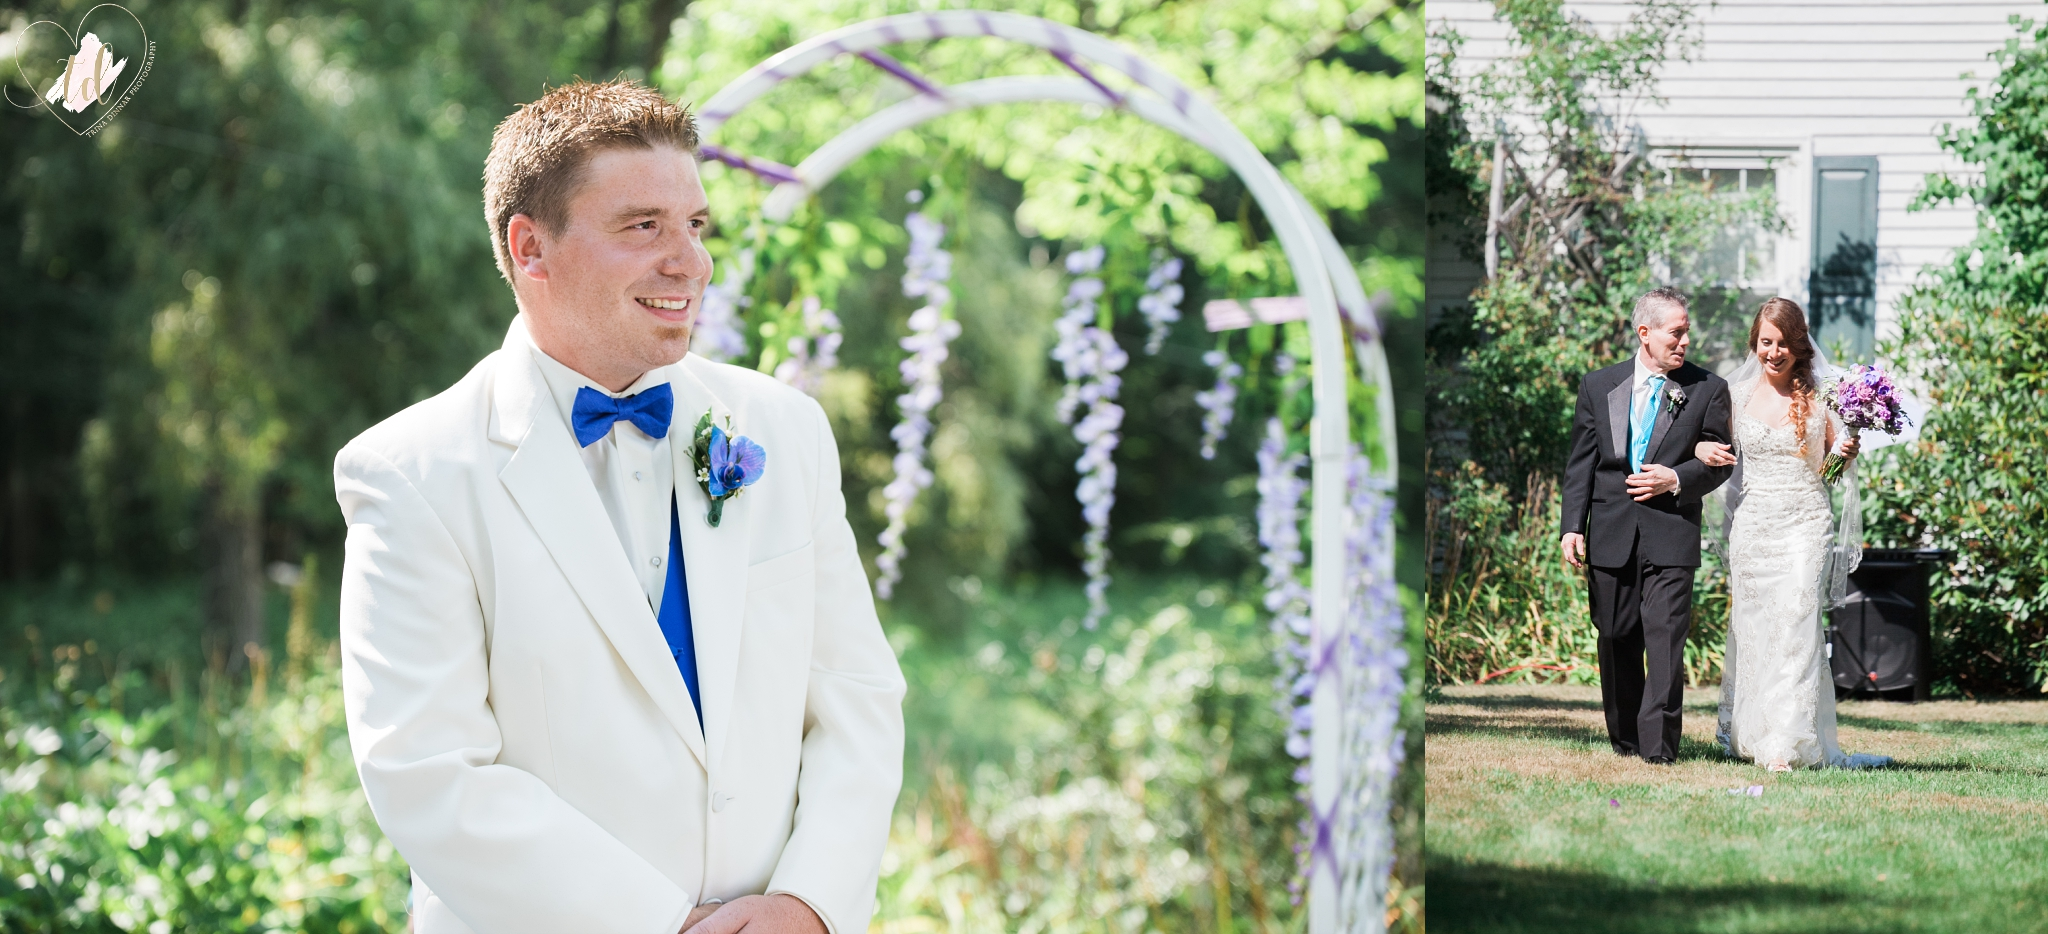 Maine groom sees his bride for the first time as she walks down the aisle.